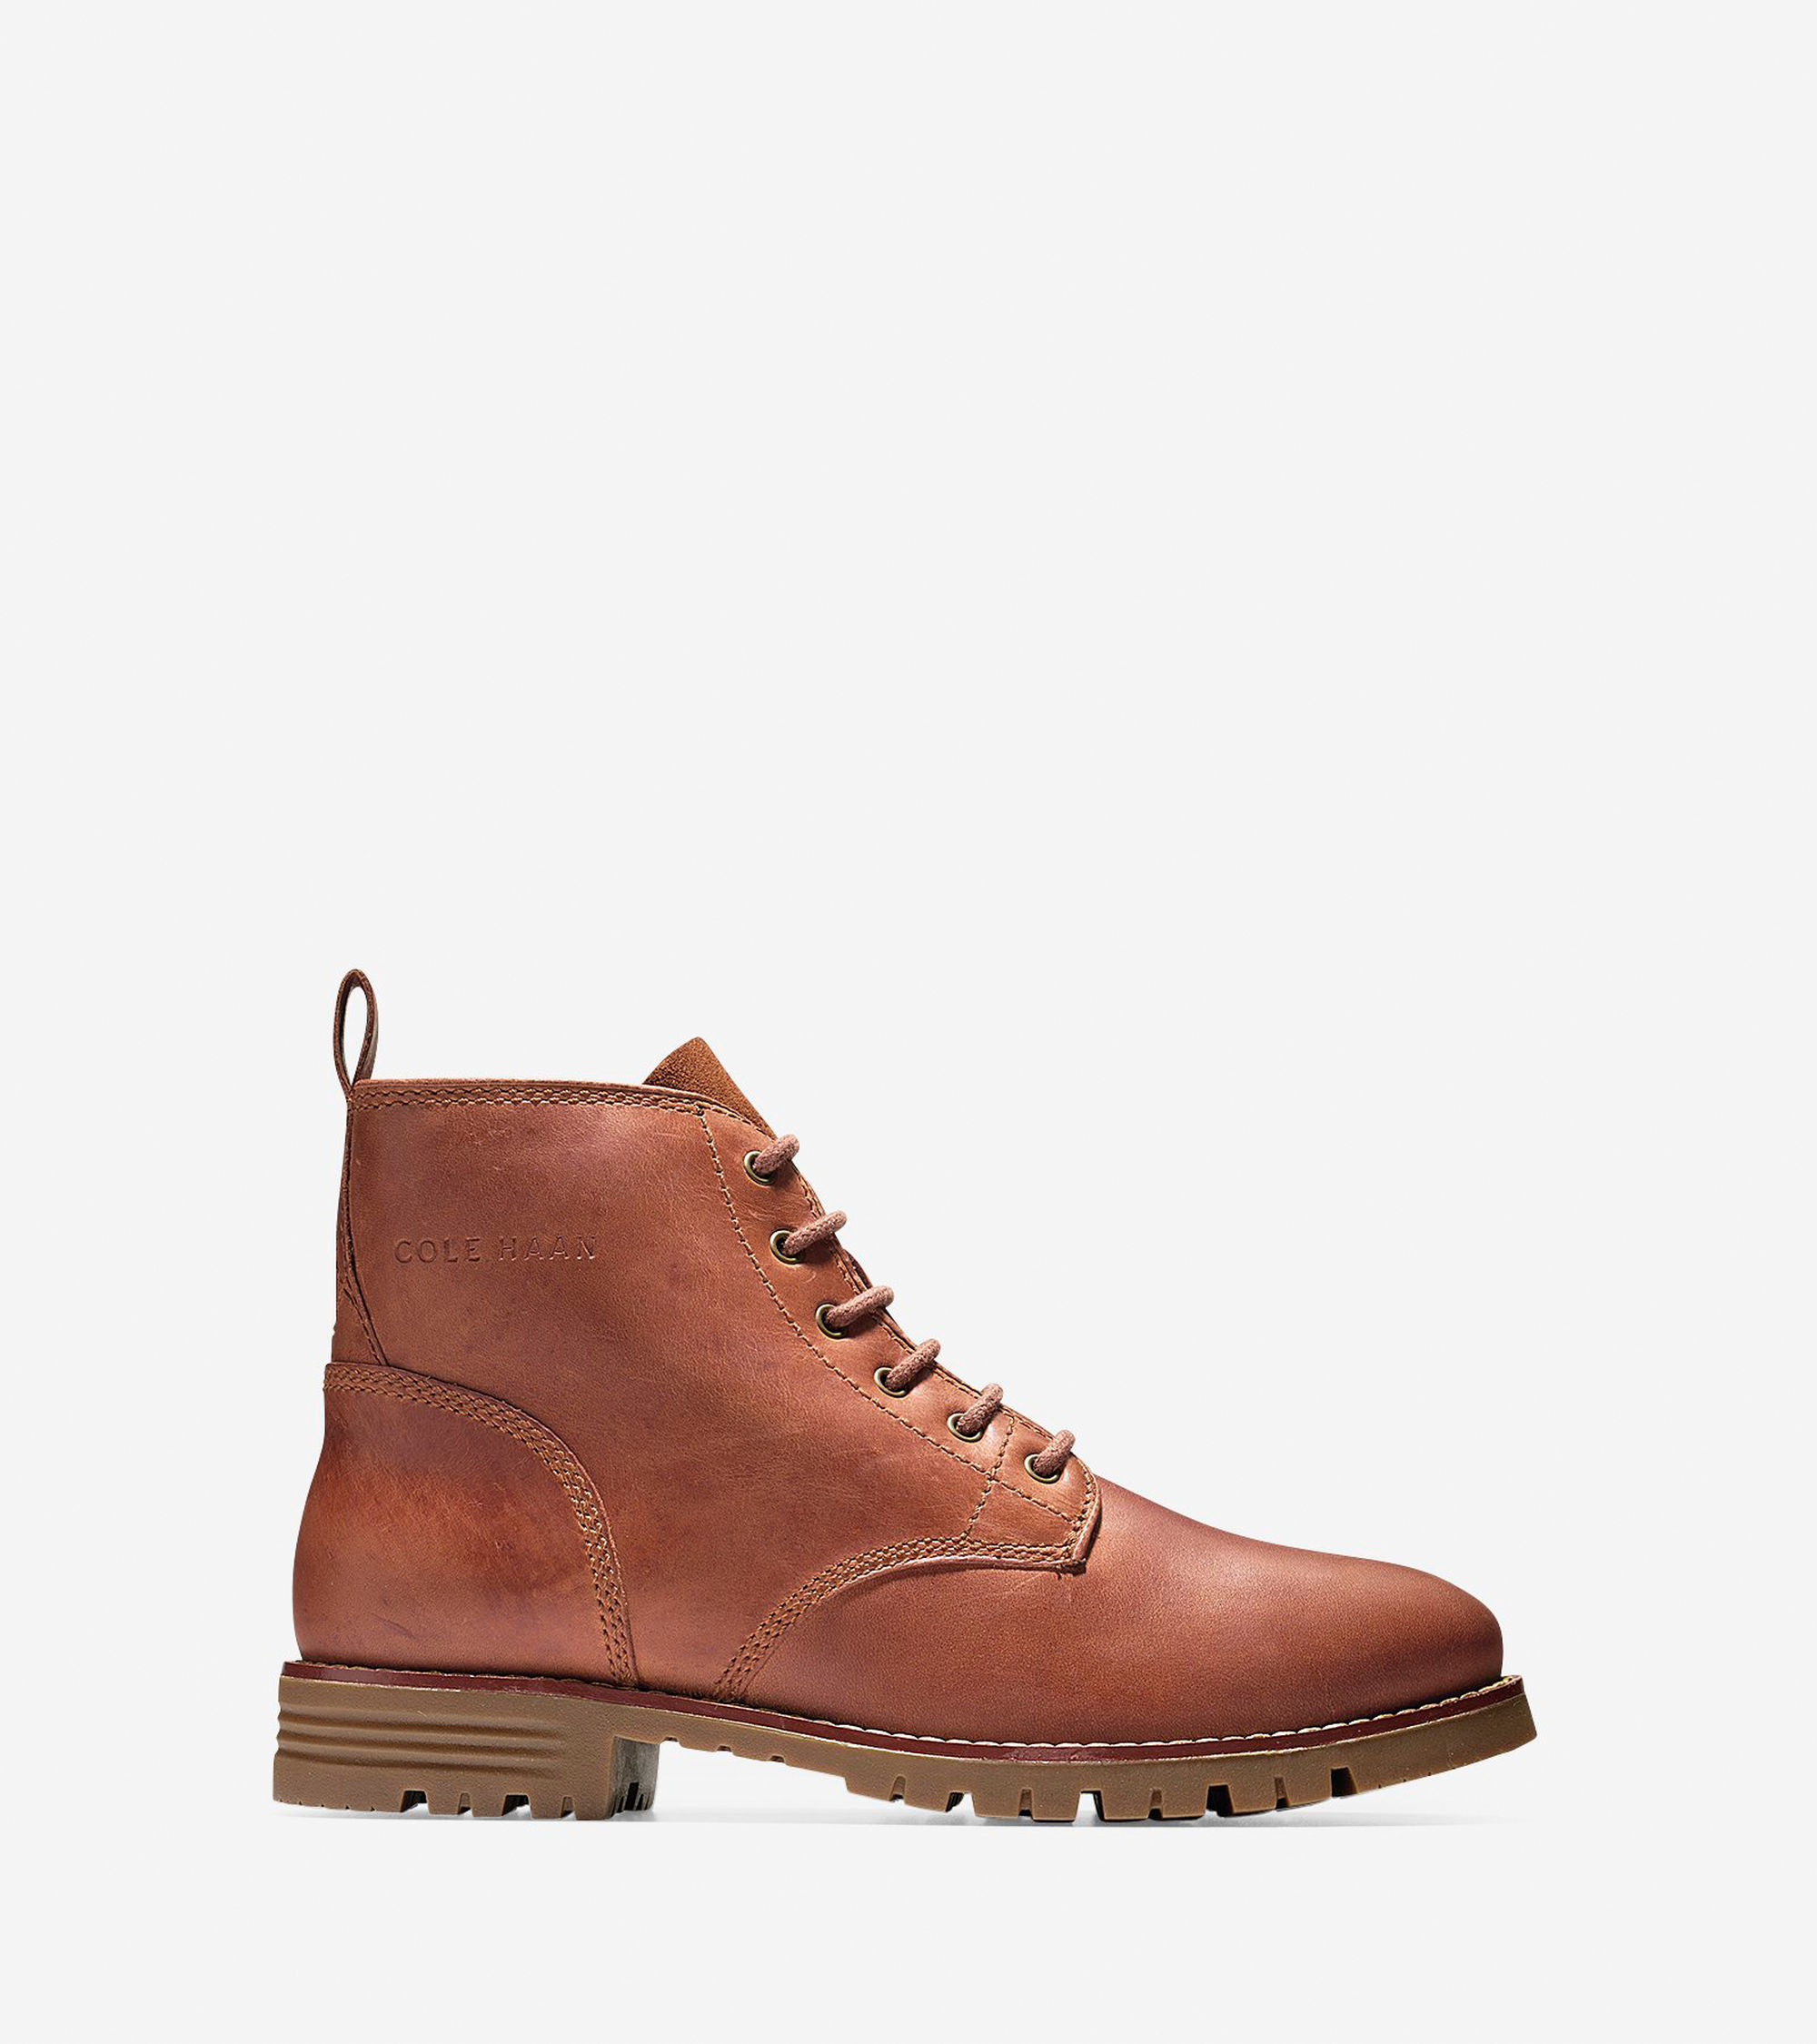 Cole Haan Outlet Brown Shoes